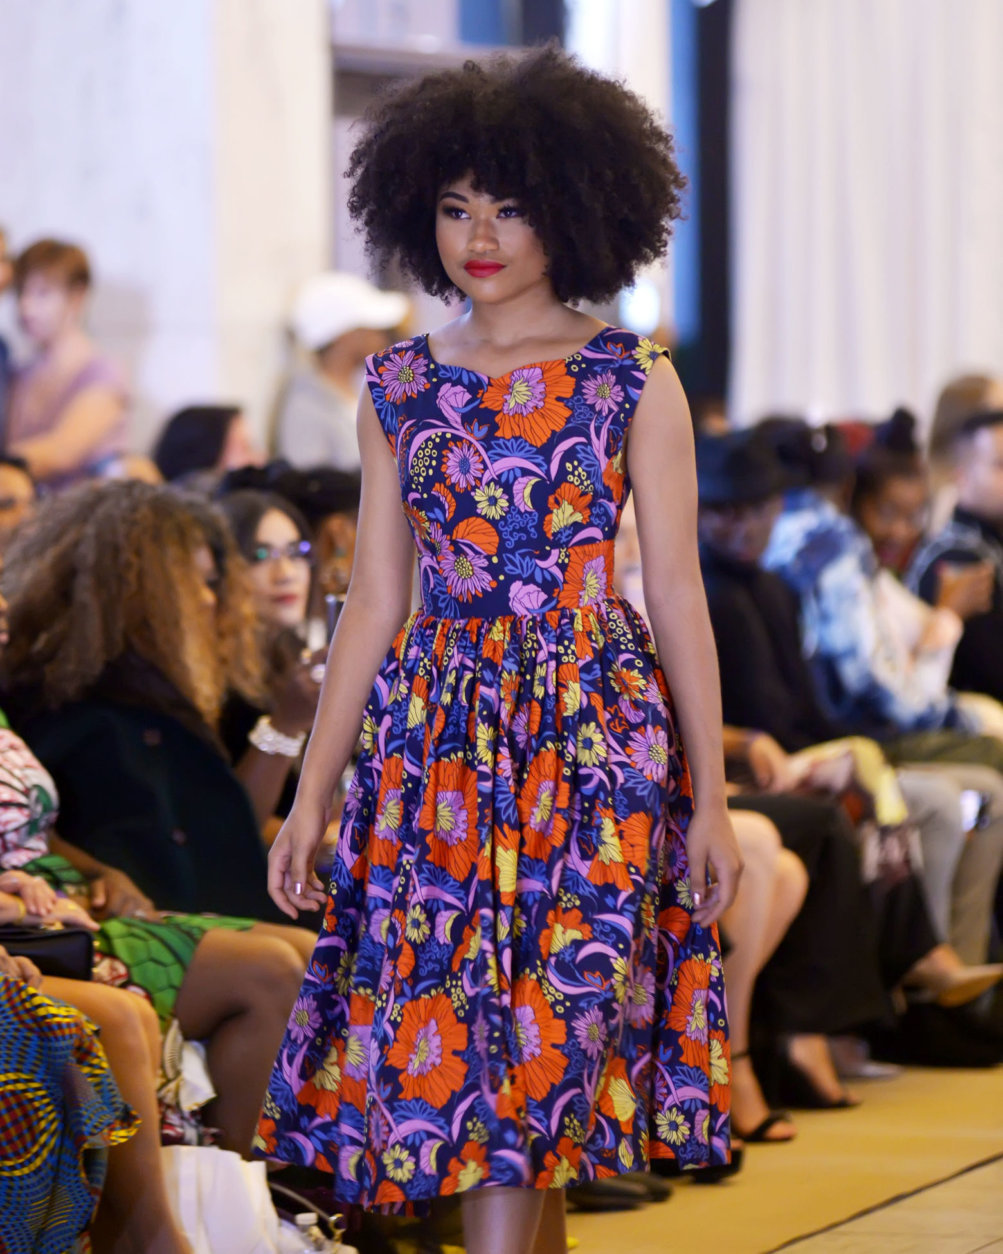 A model wearing an outfit by Washington, DC-based ModCloth walks the runway at DC Fashion Week's 2018 International Couture Collections at the Embassy of France